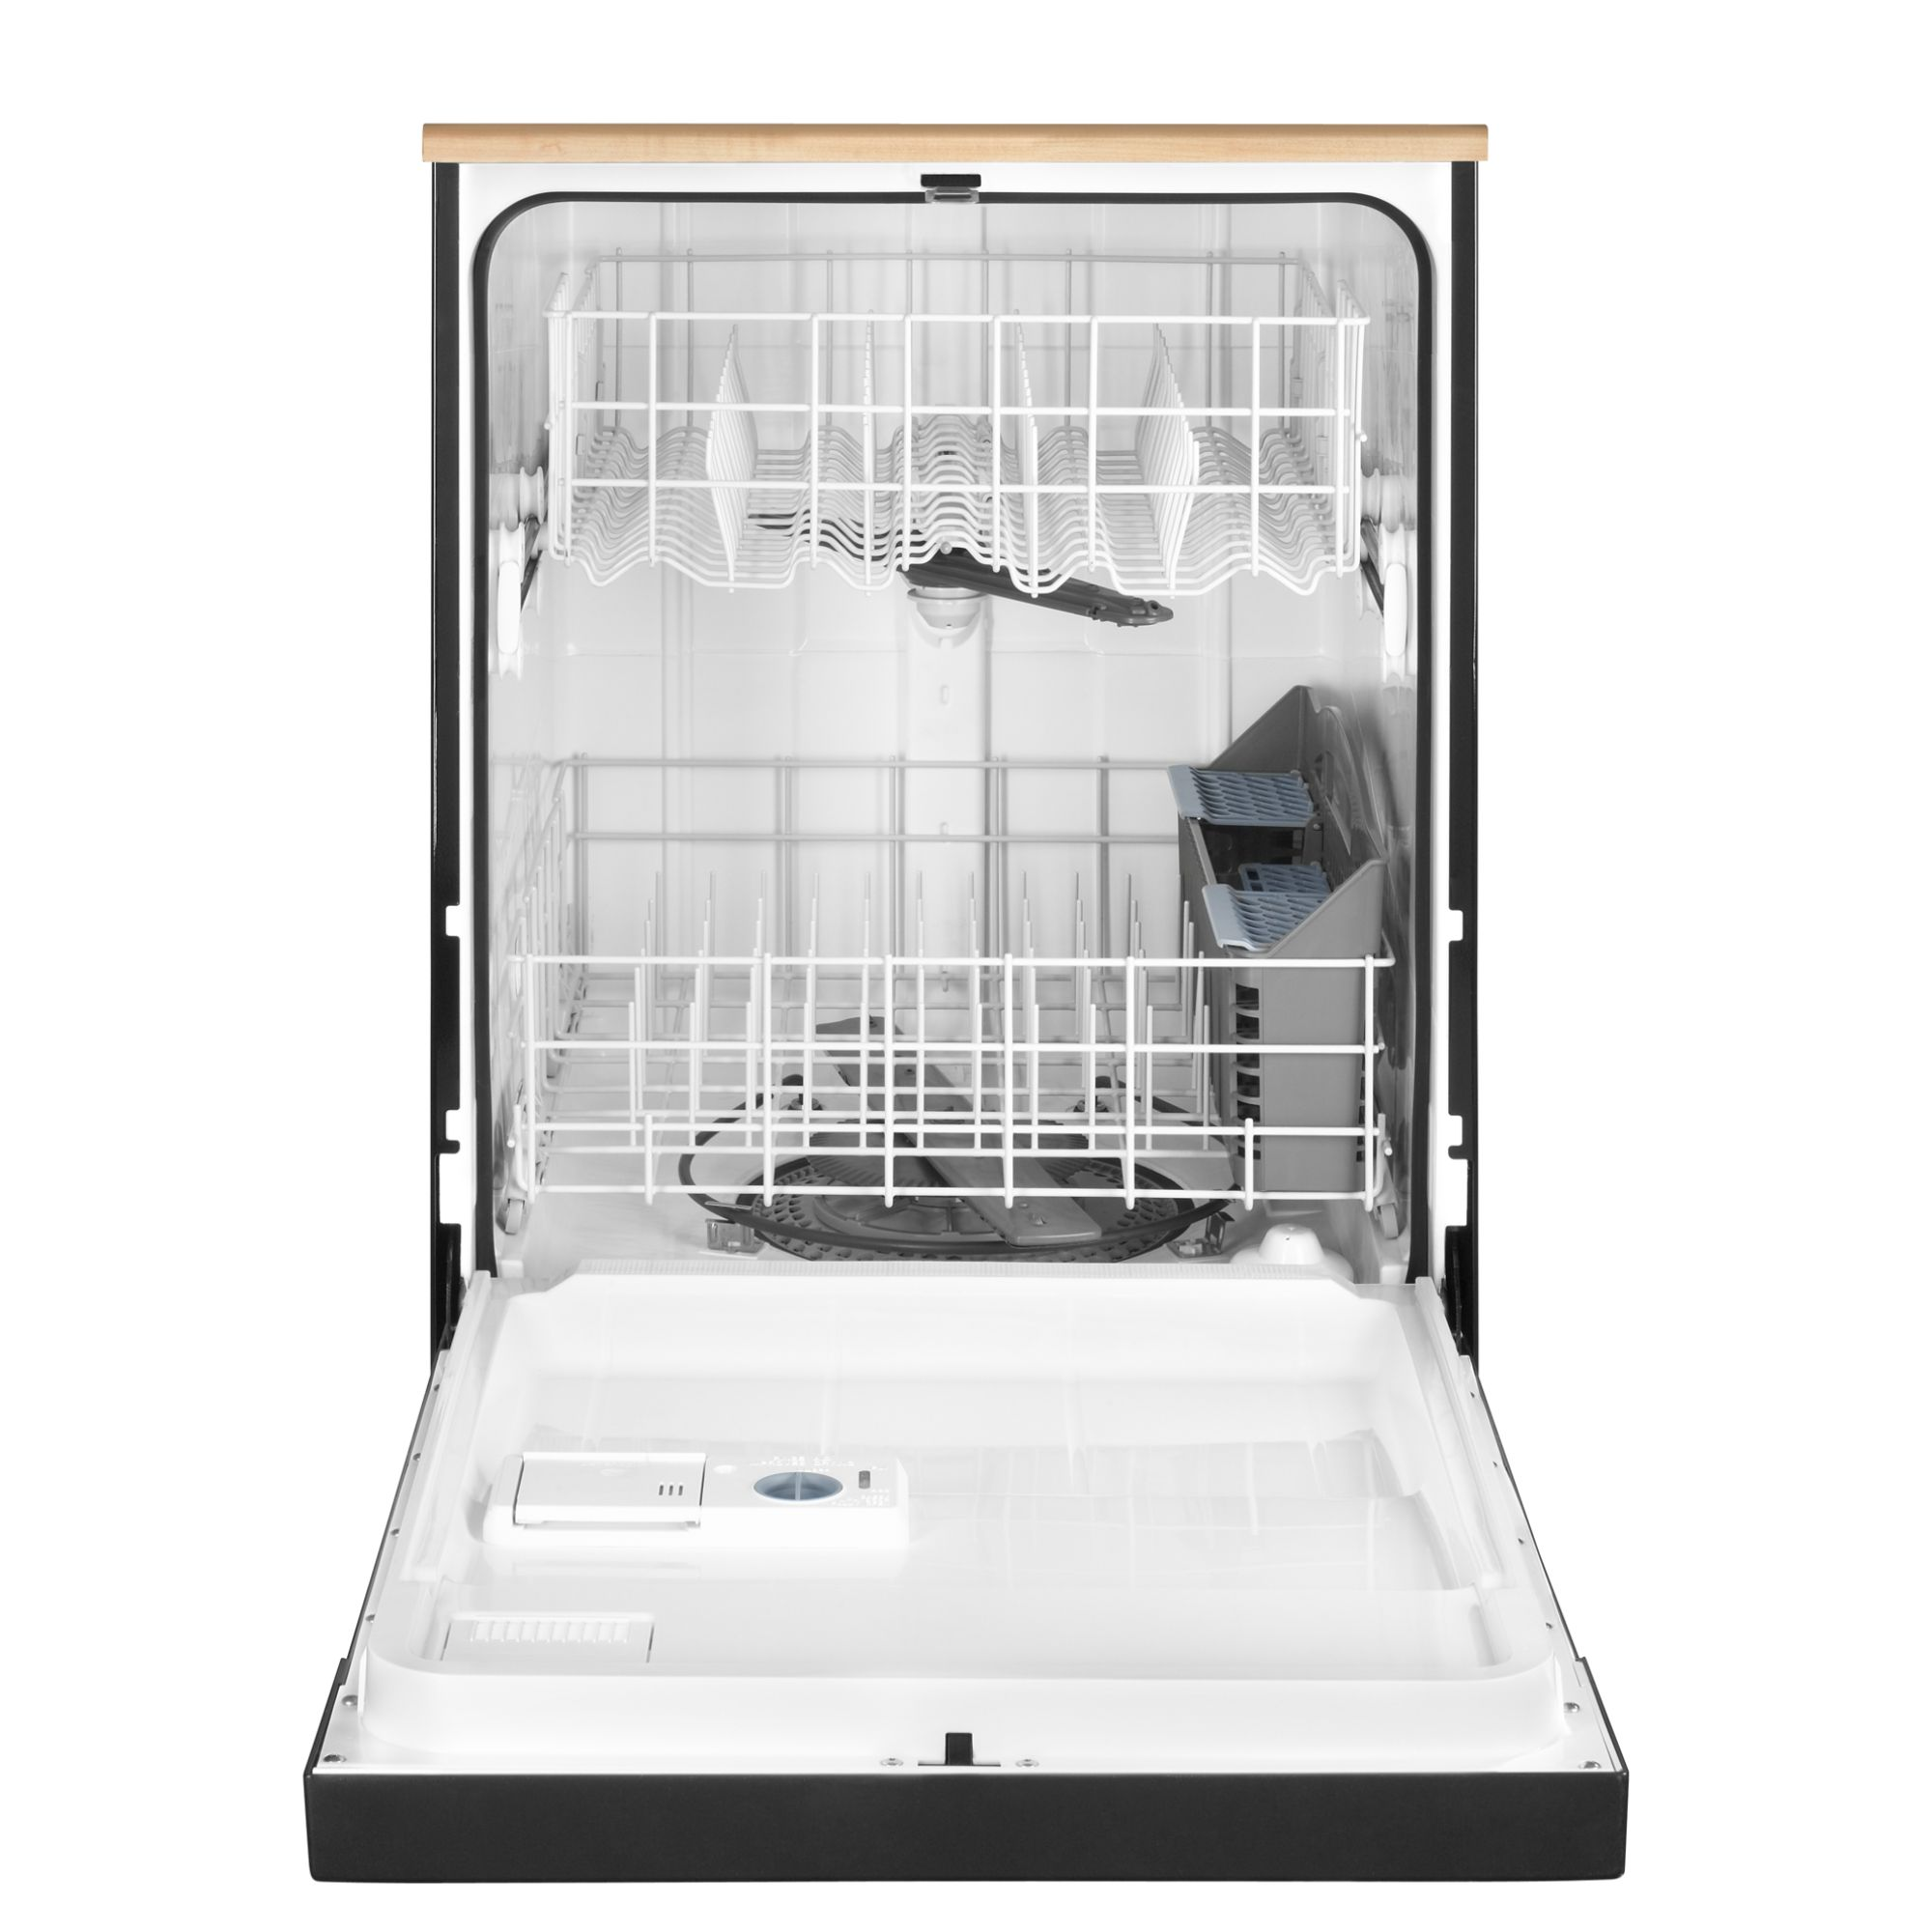 "Maytag 24"" Portable Jetclean® Plus Dishwasher w/ High-Temp Wash Option - Black"